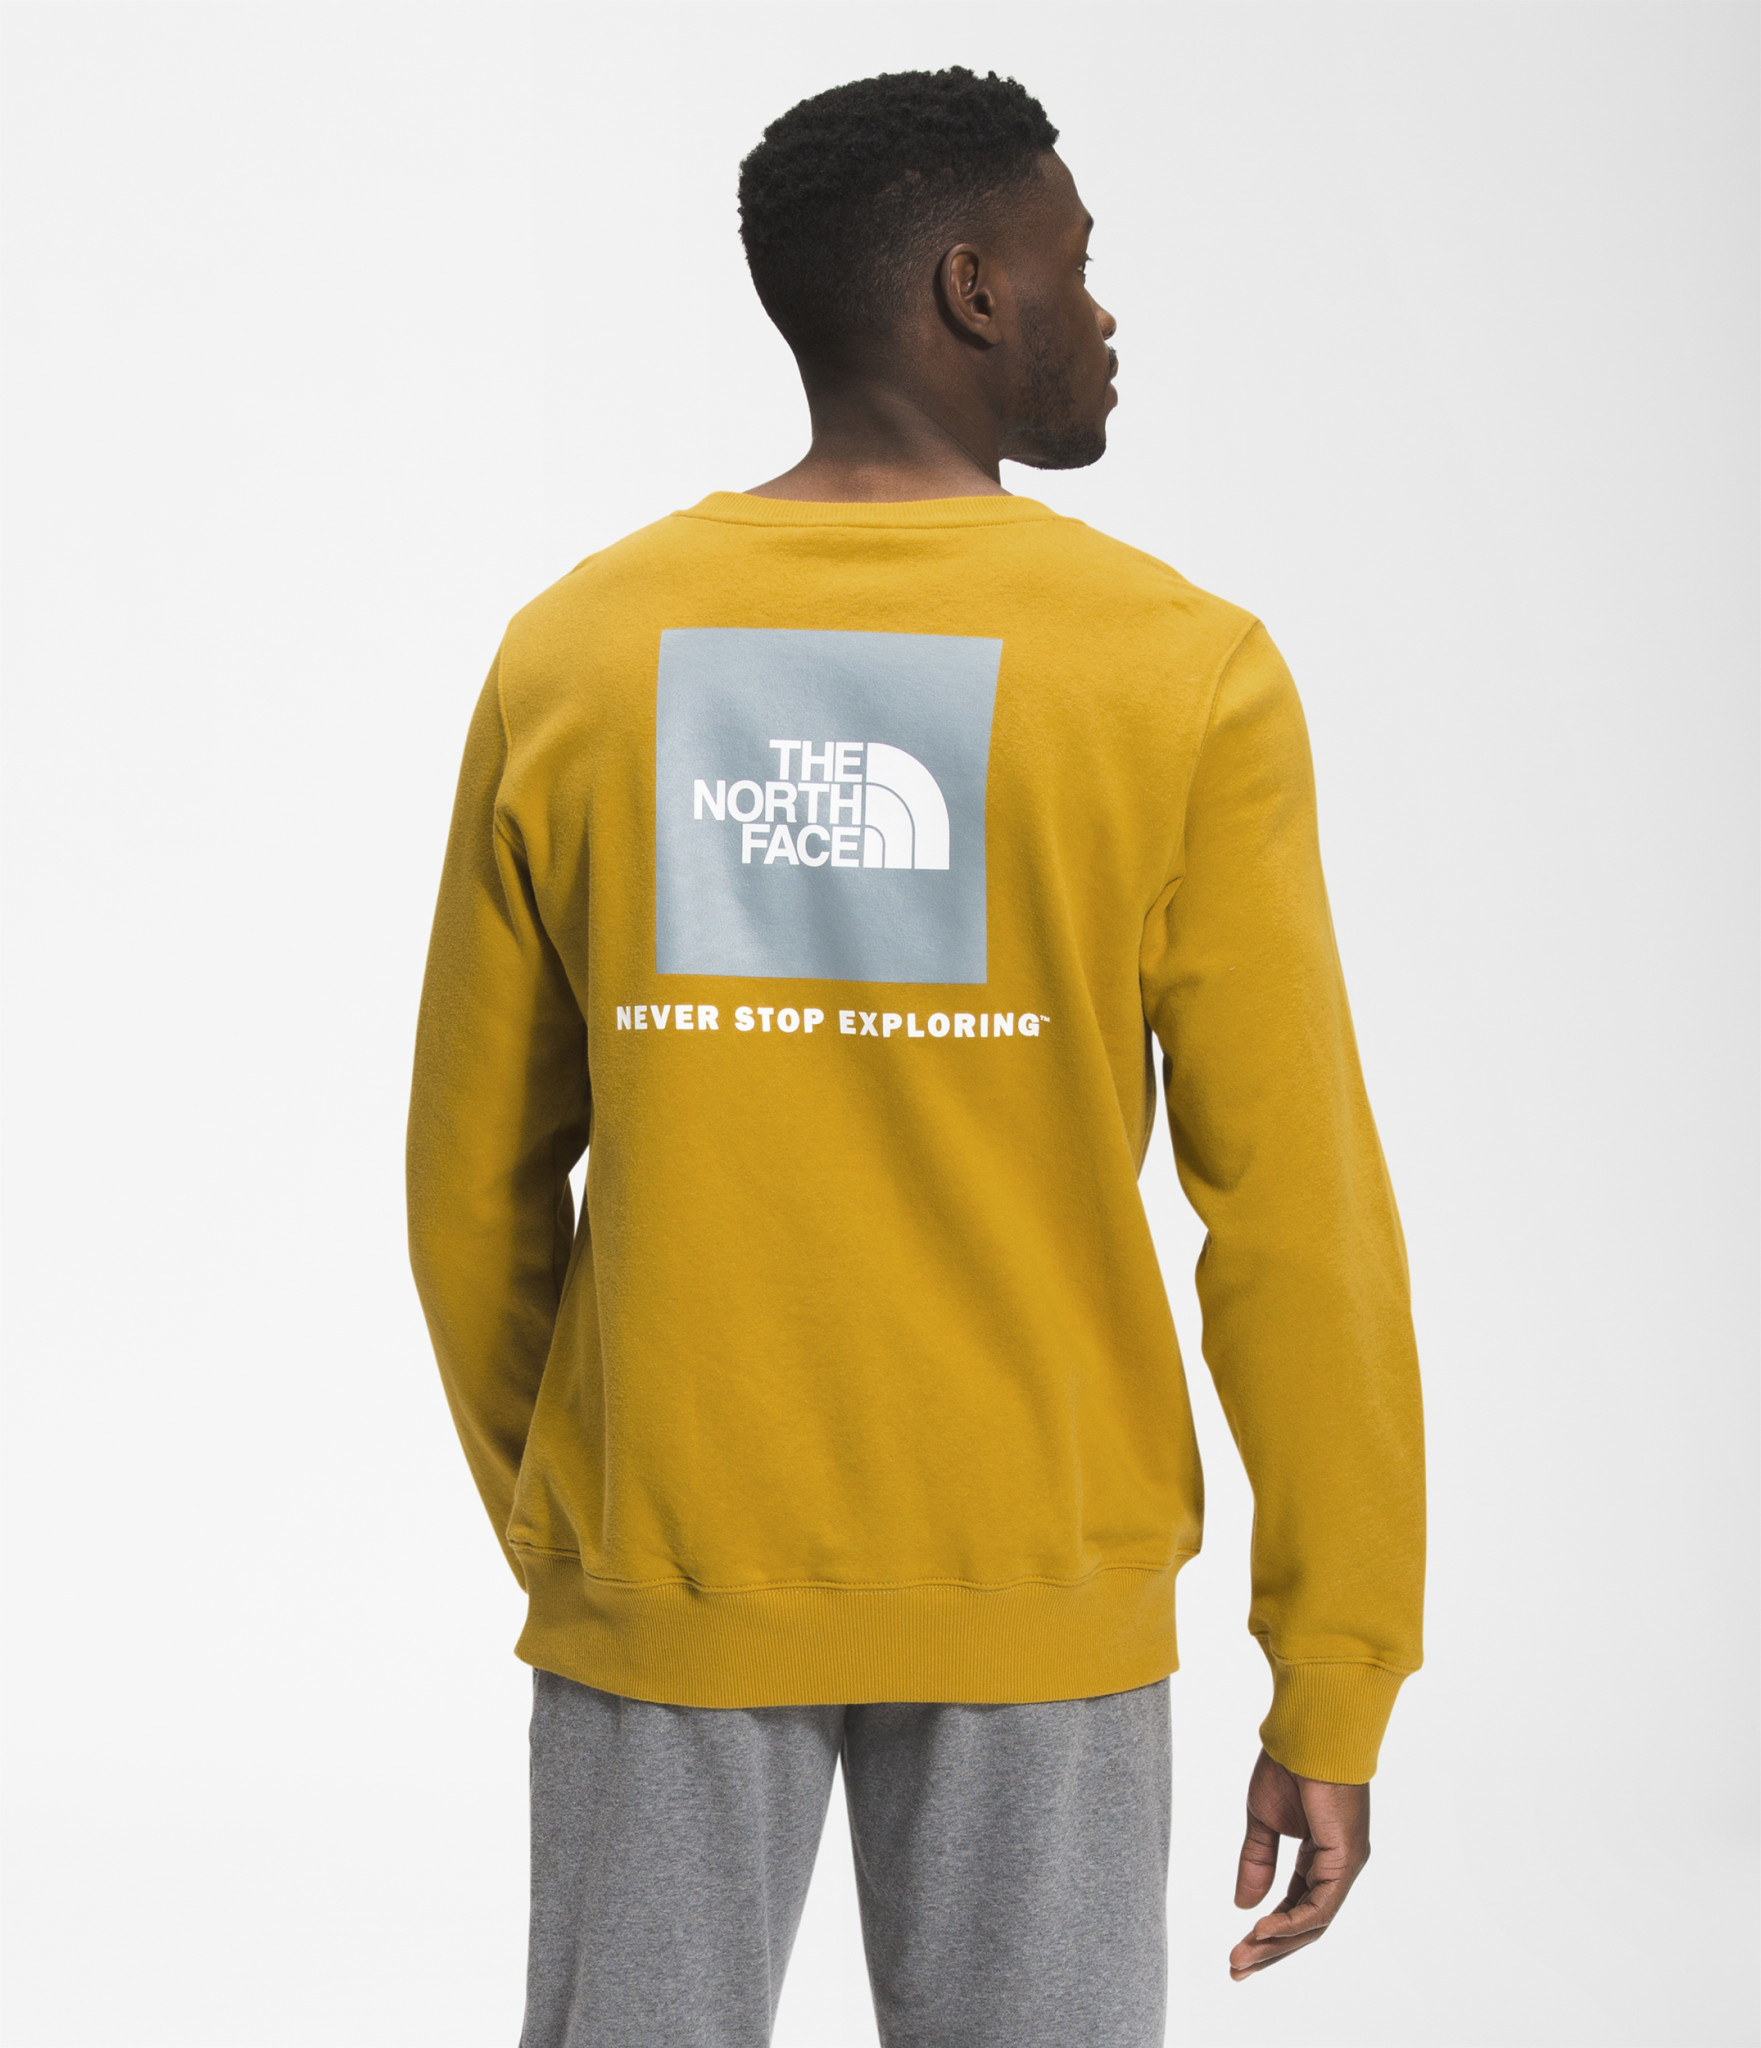 The North Face The North Face M's Box NSE Crew